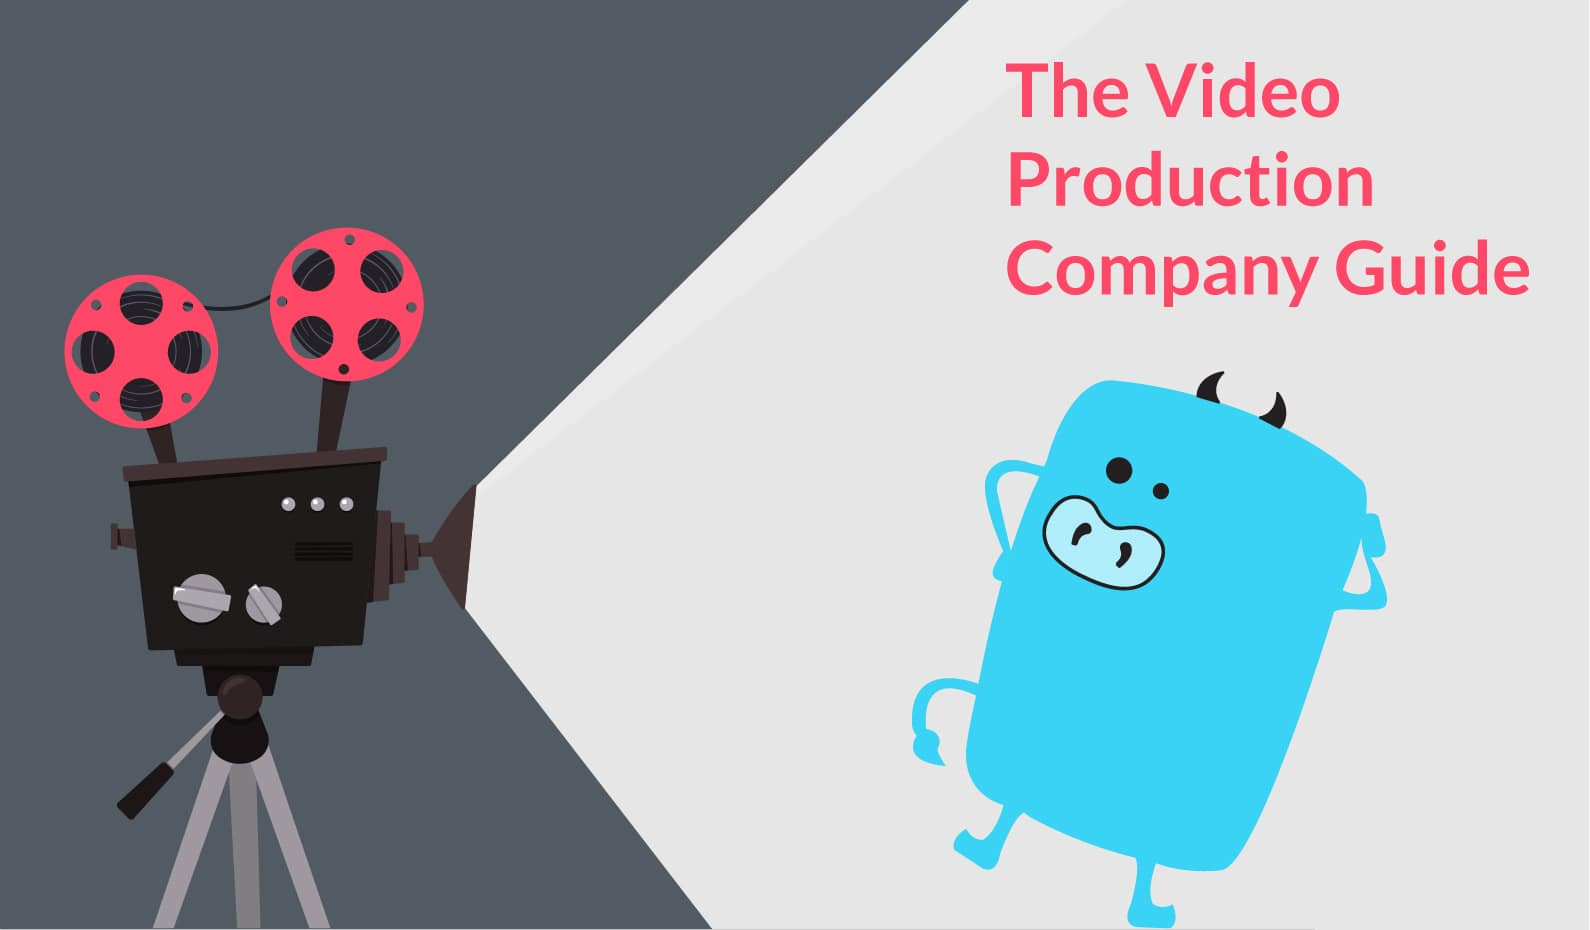 The-Video-Production-Company-Guide_-01-min